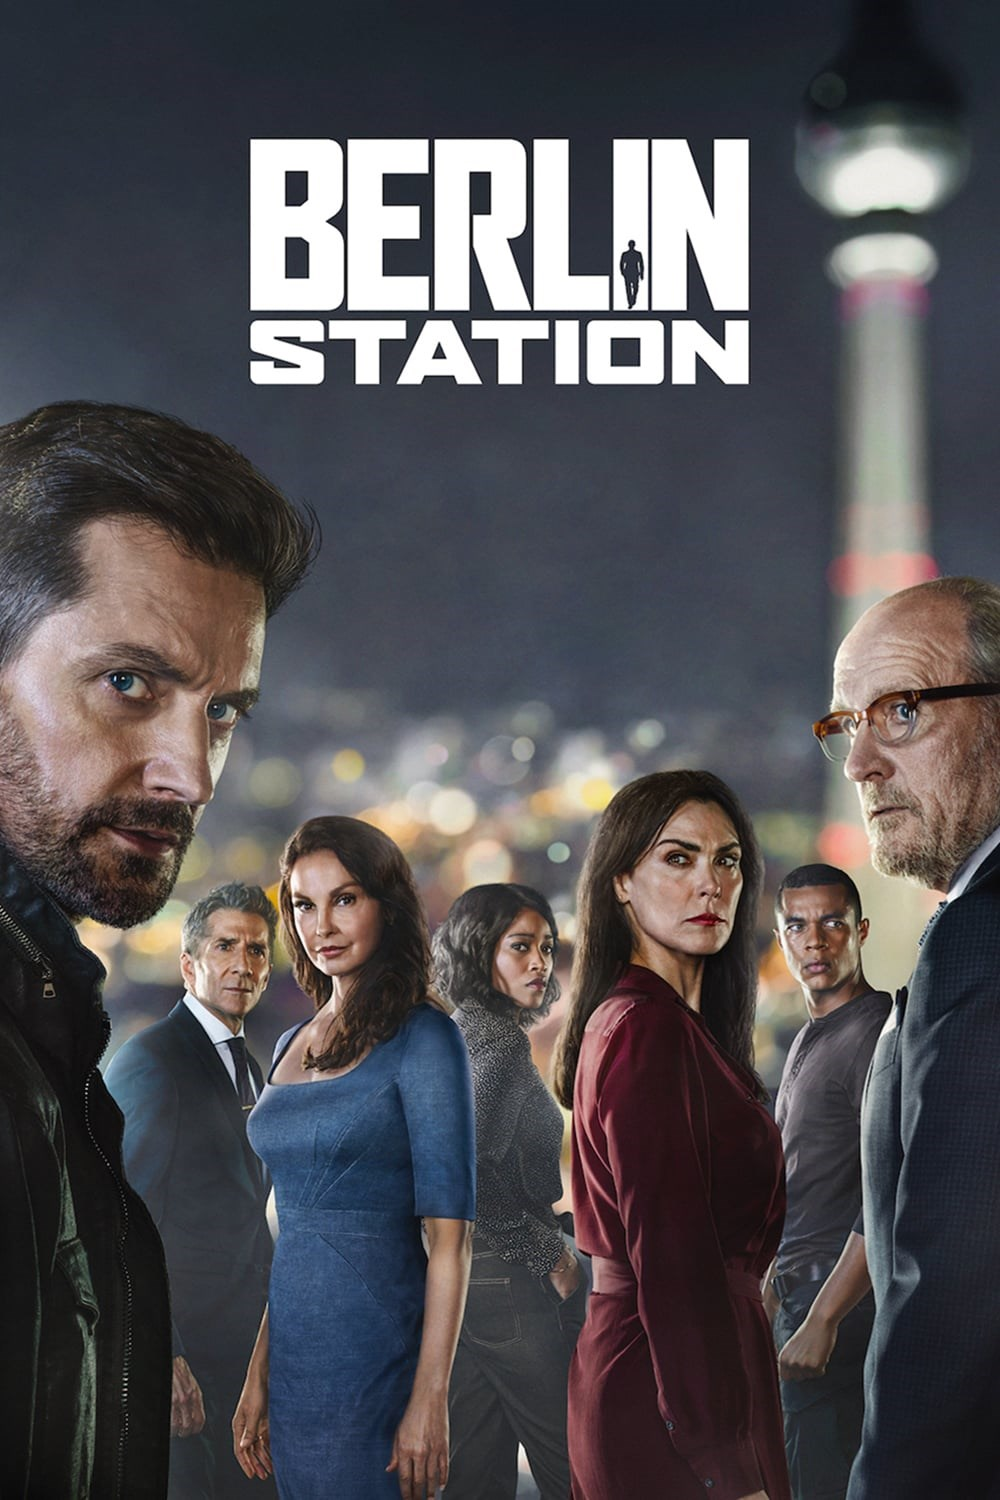 Berlin Station kapak